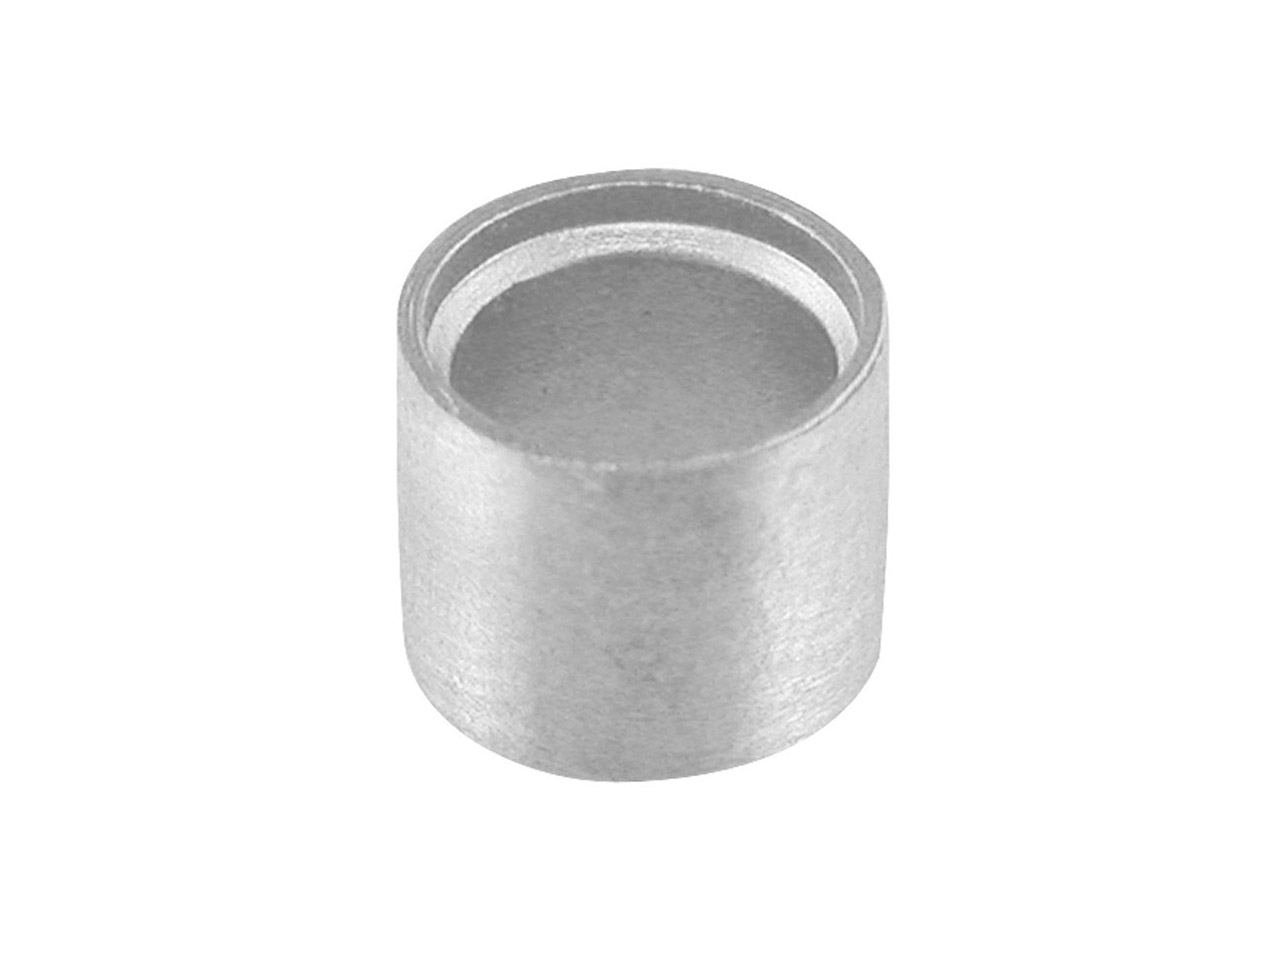 9ct White Gold Tube Setting 4.6mm  Rts46 Semi Finished Cast Collet